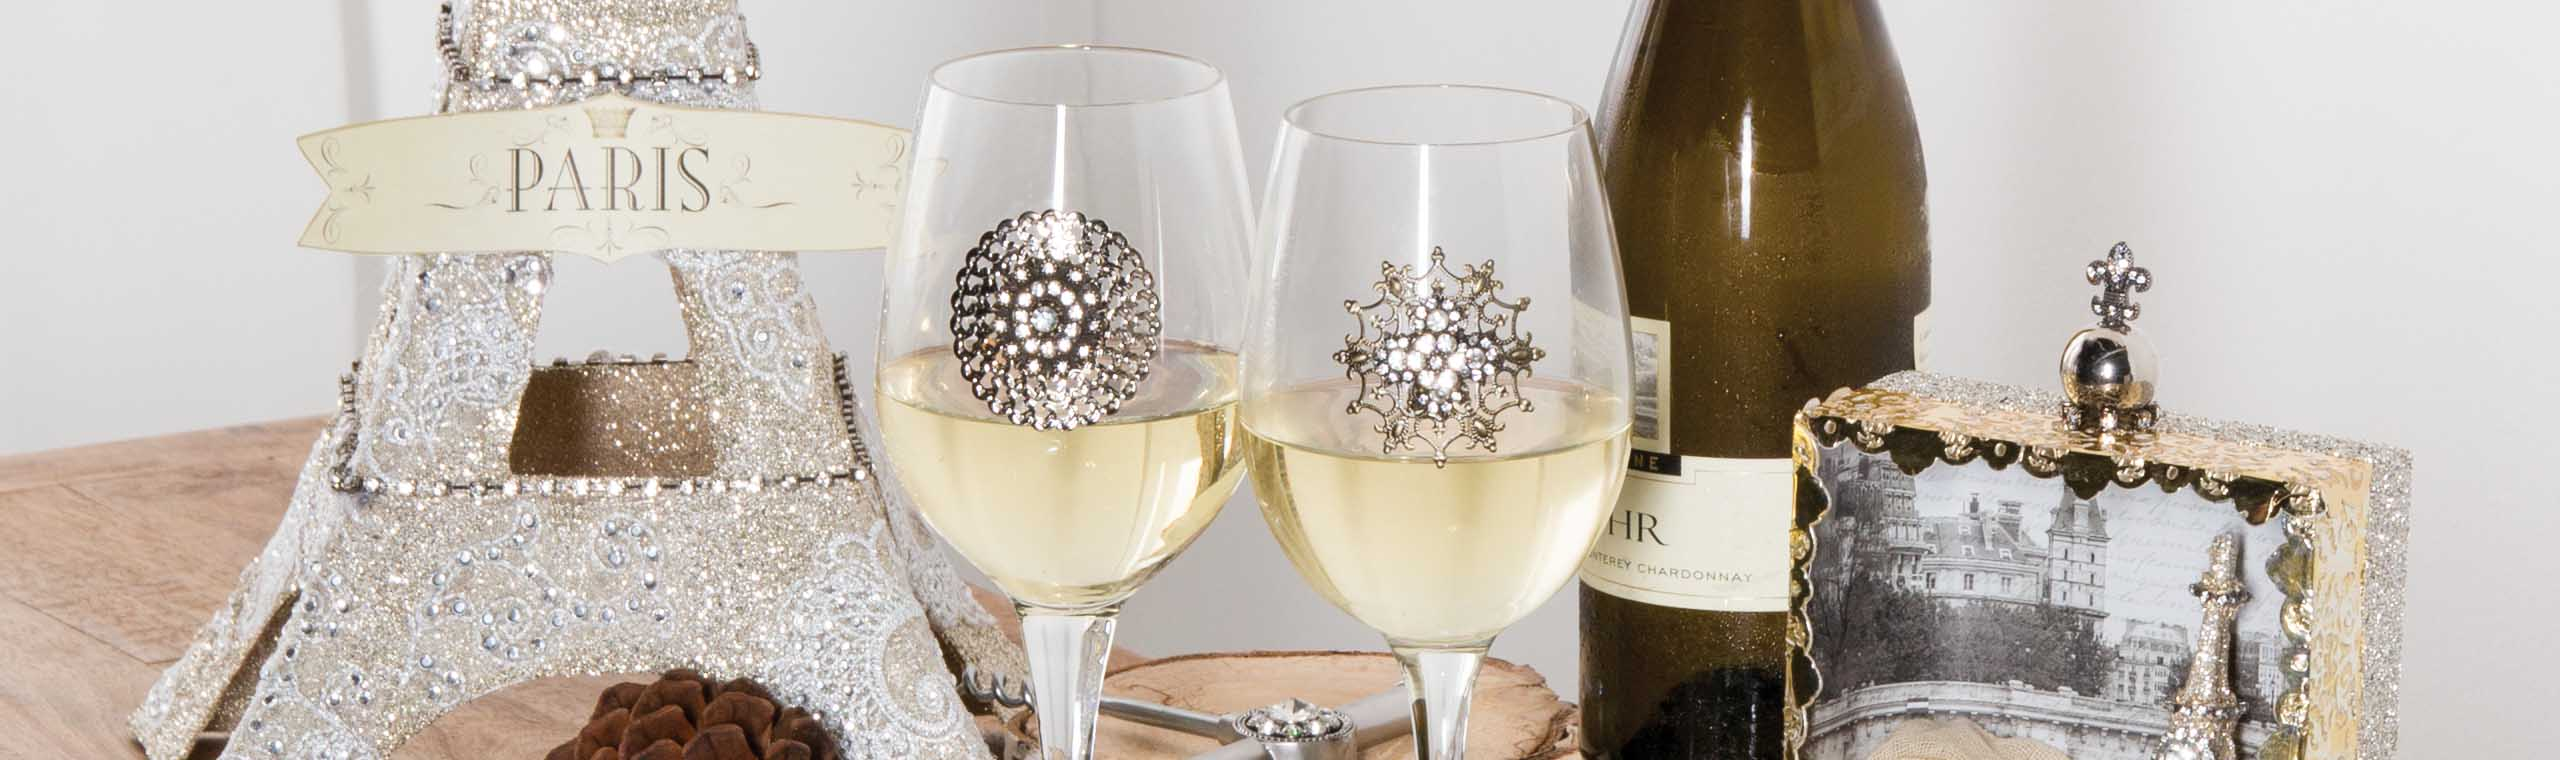 Gold, glitter and jewel embellished wine glasses and picture frames